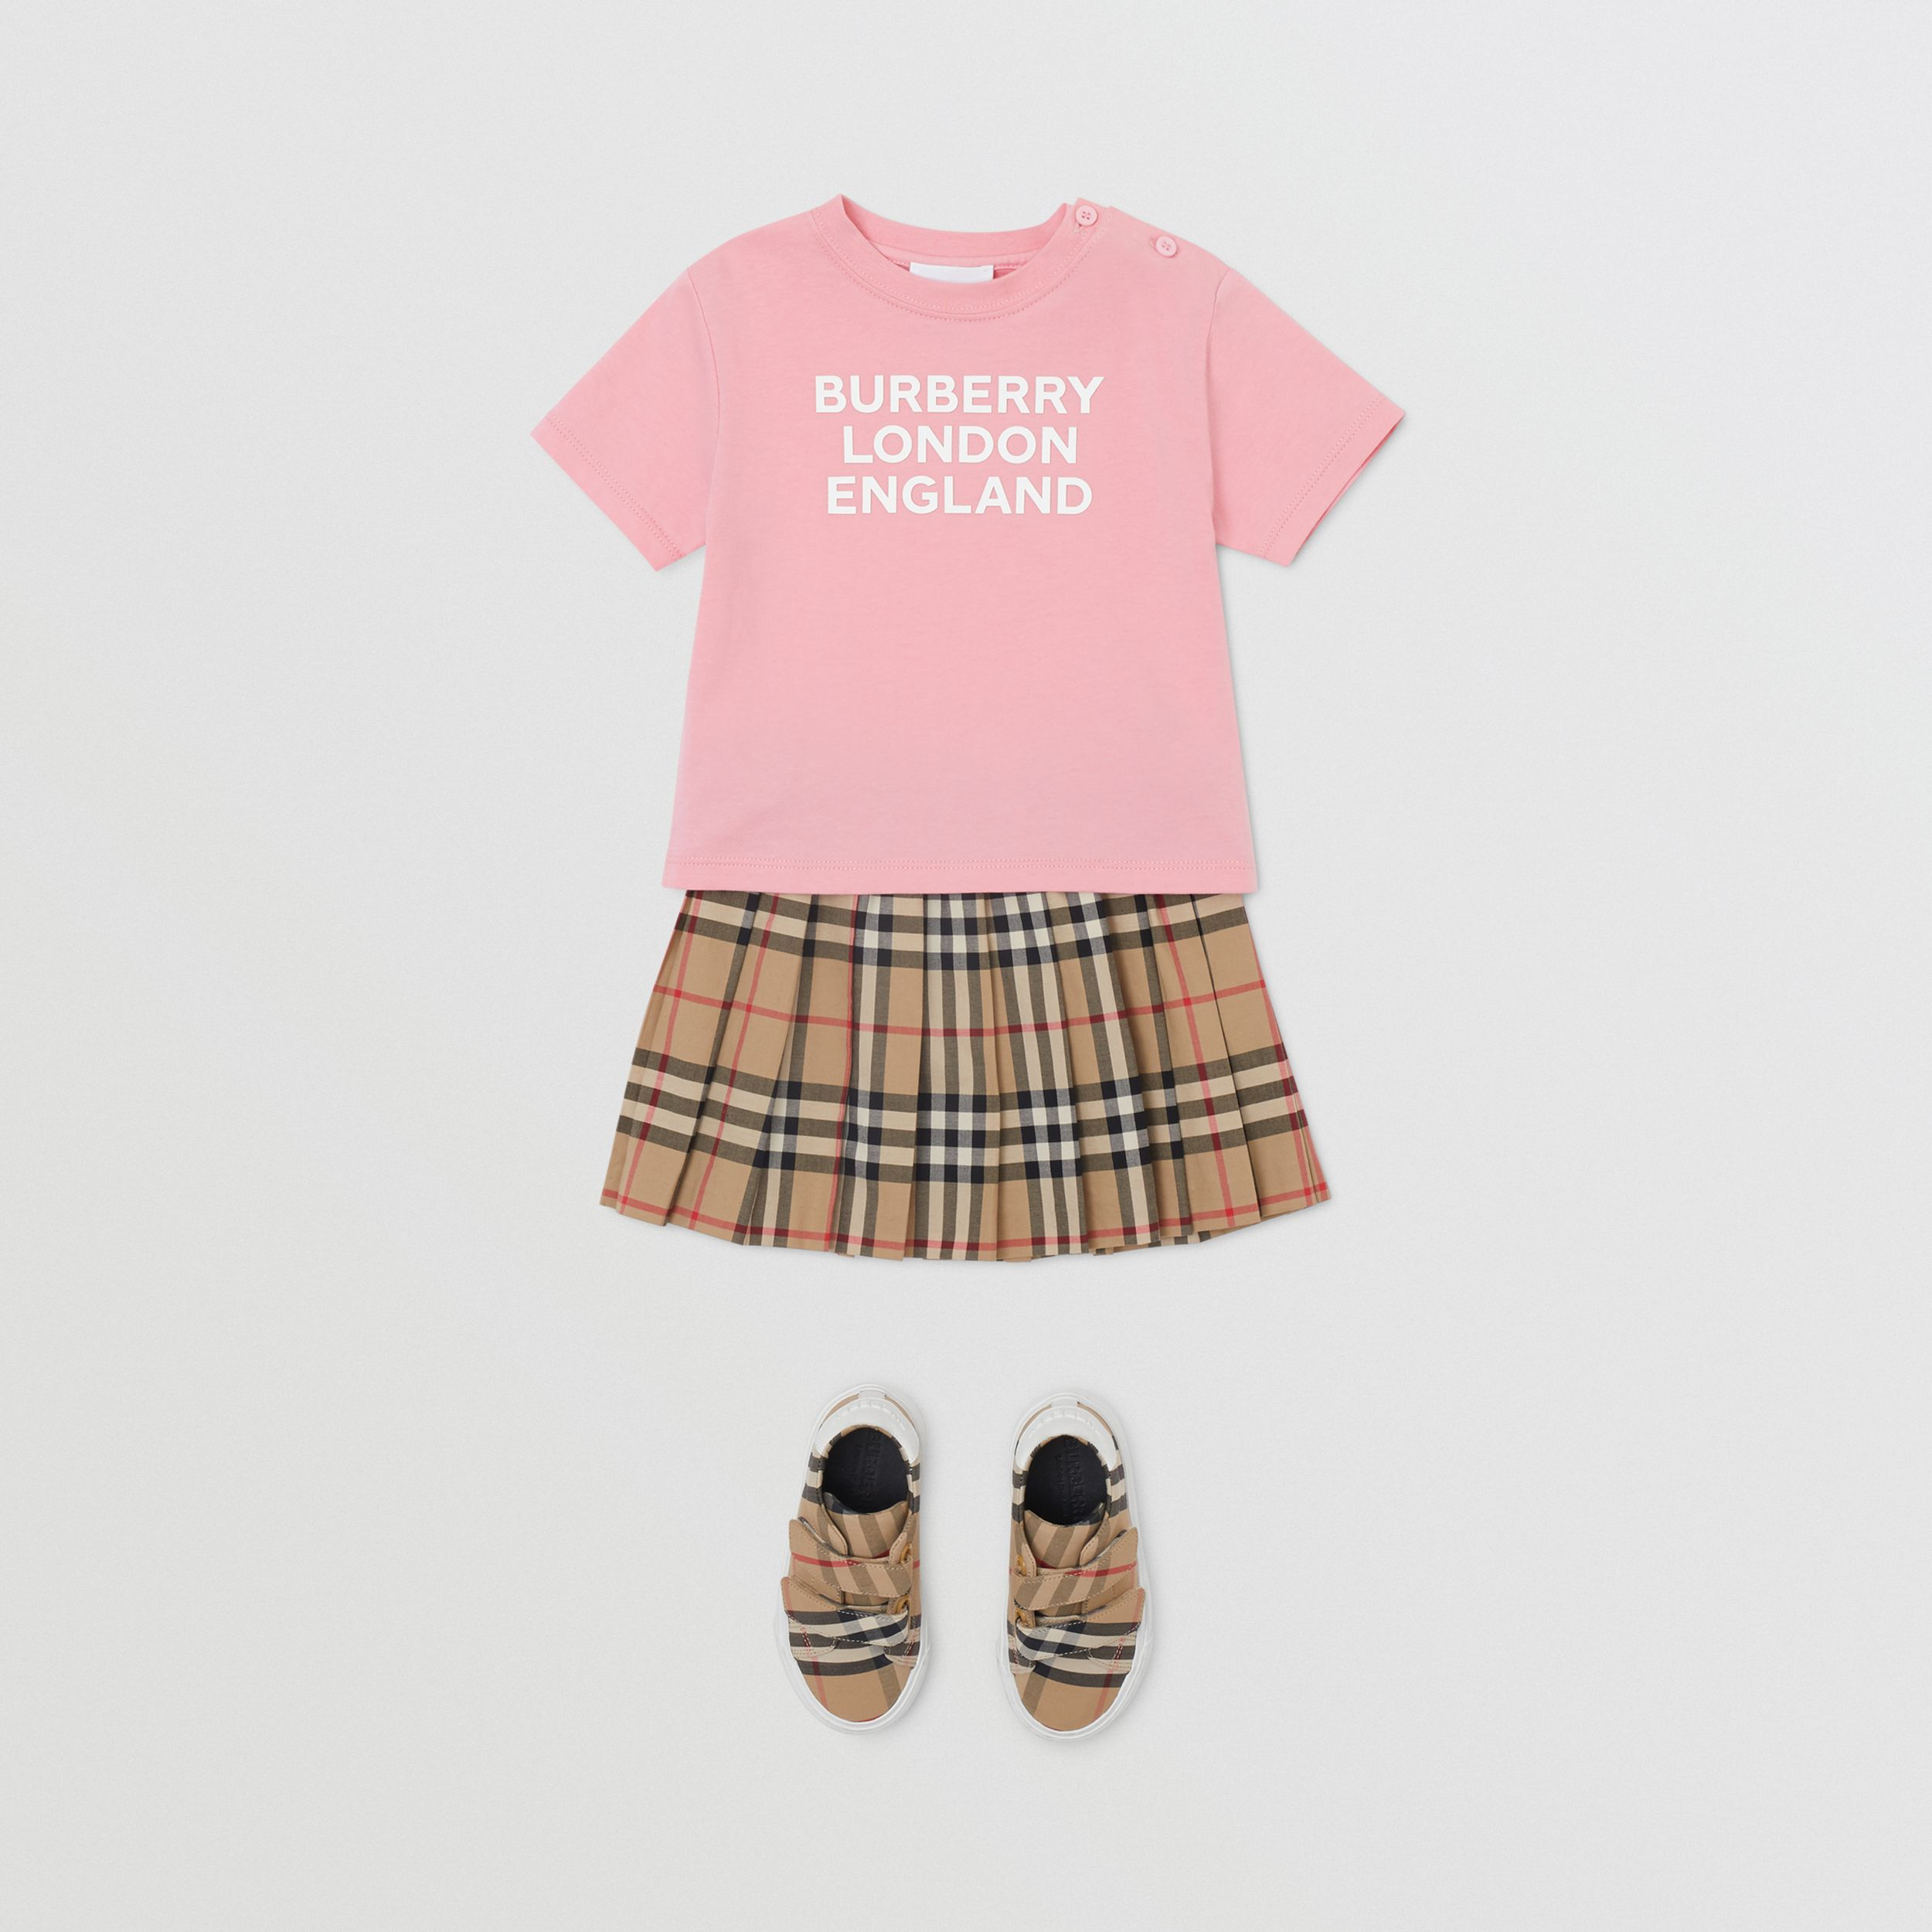 Logo Print Cotton T-shirt in Candy Pink - Children | Burberry - 3